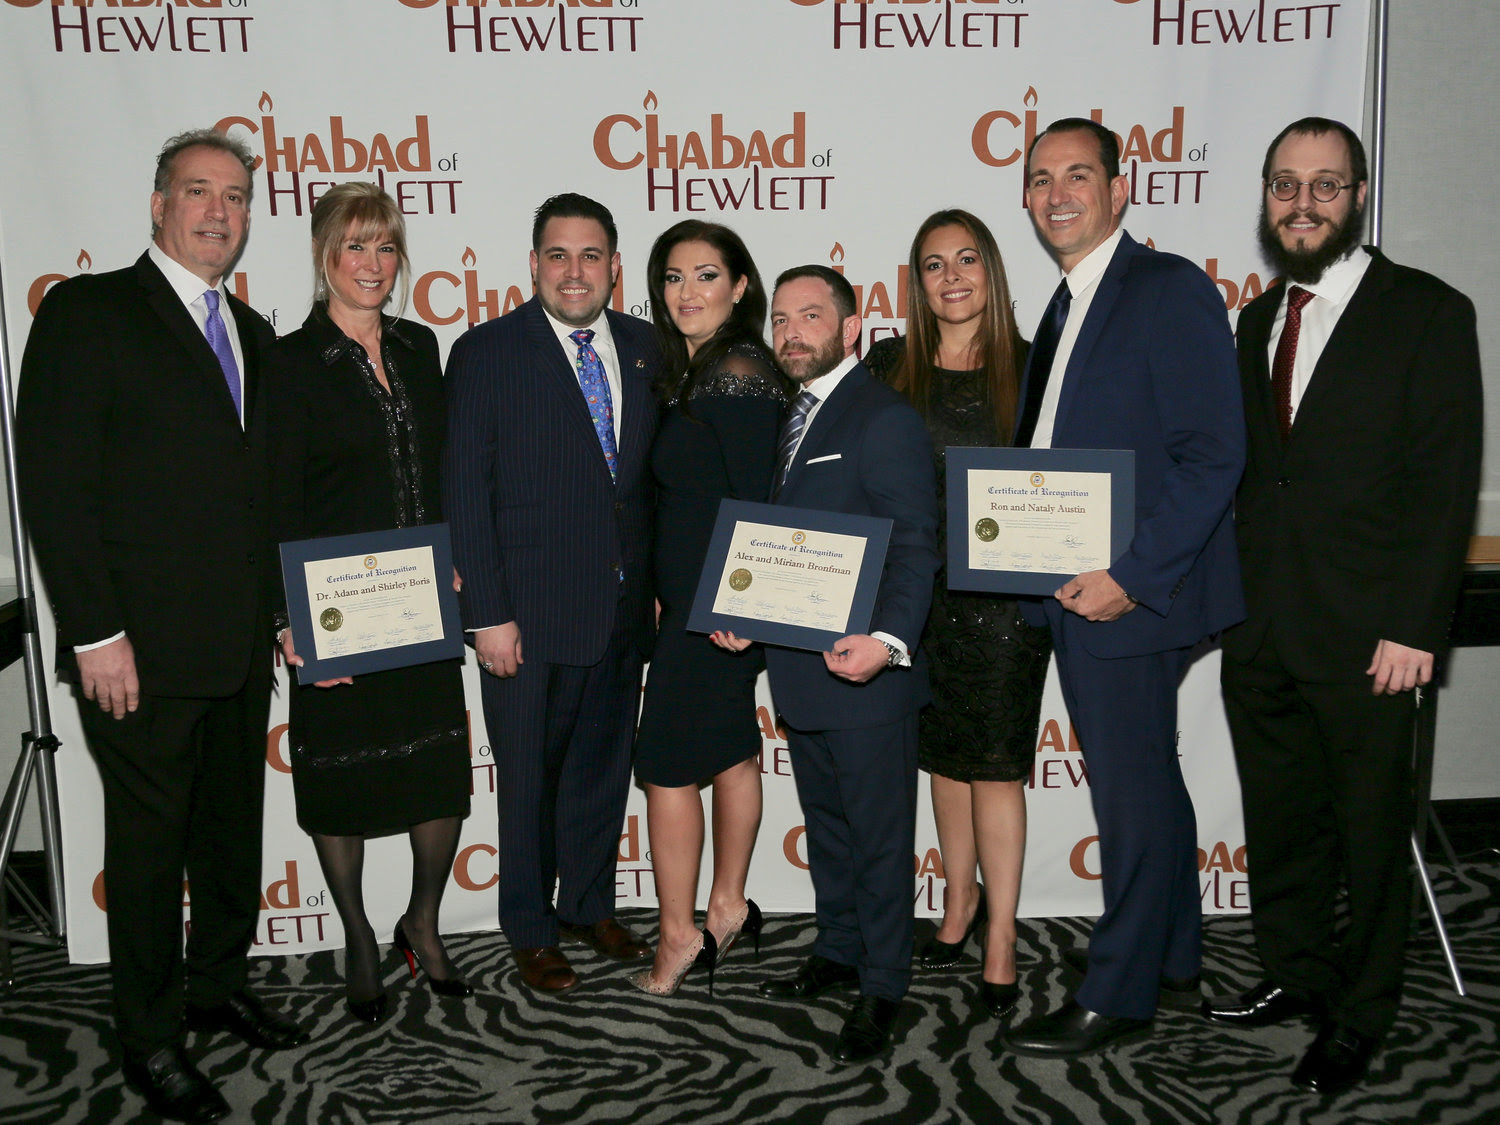 Town of Hempstead Councilman Anthony D'Esposito presented certificates of recognition to the Chabad of Hewlett honorees. From left were Dr. Adam and Shirley Boris, D'Esposito, Miriam and Alex Bronfman and Nataly and Ron Austin, and Rabbi Nochem Tenenboim.